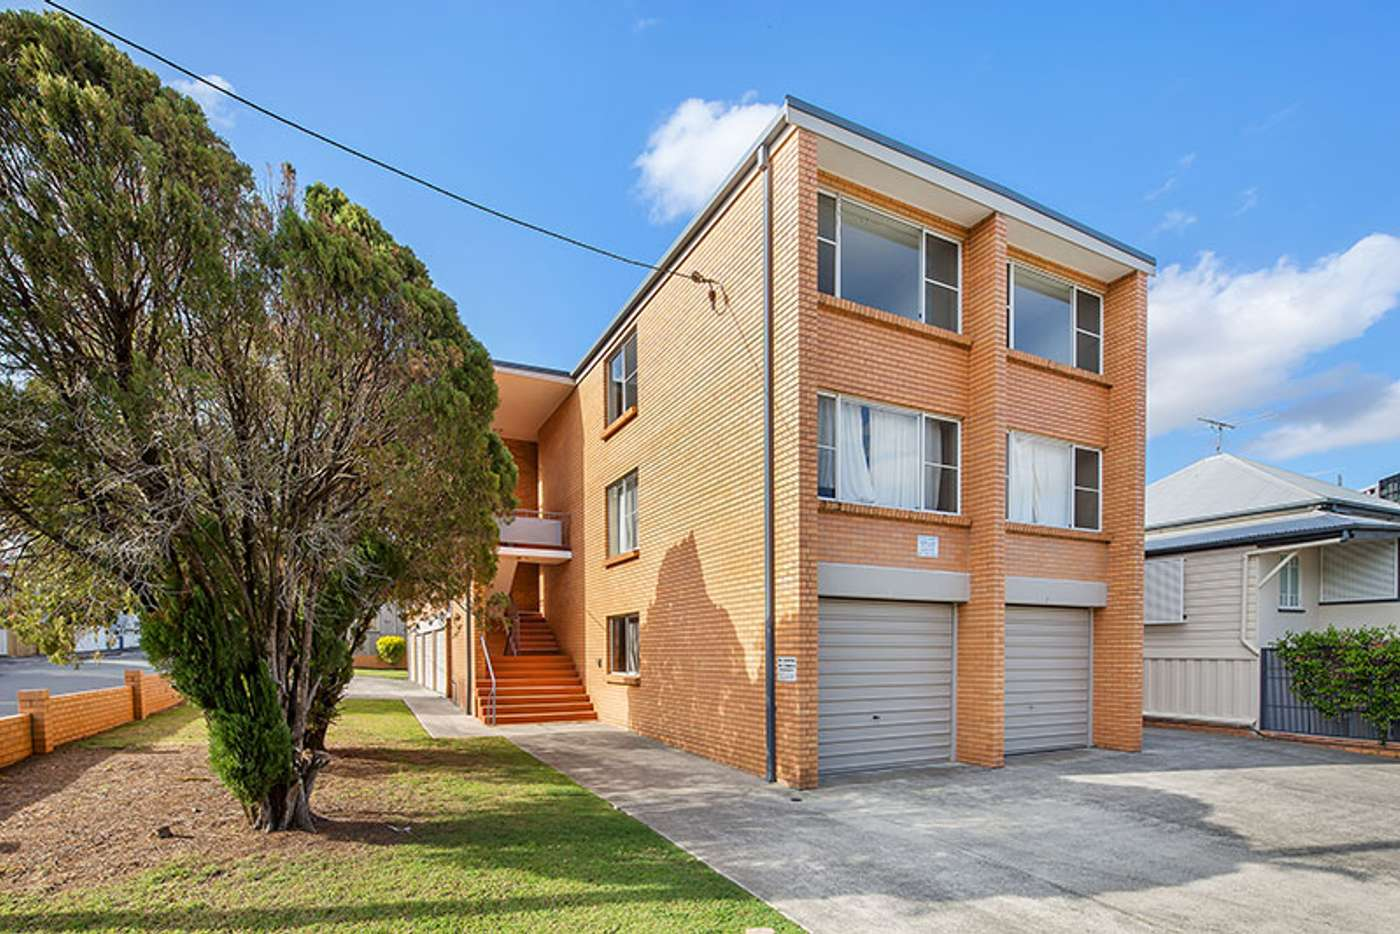 Main view of Homely apartment listing, 36 Pearson Street, Kangaroo Point QLD 4169